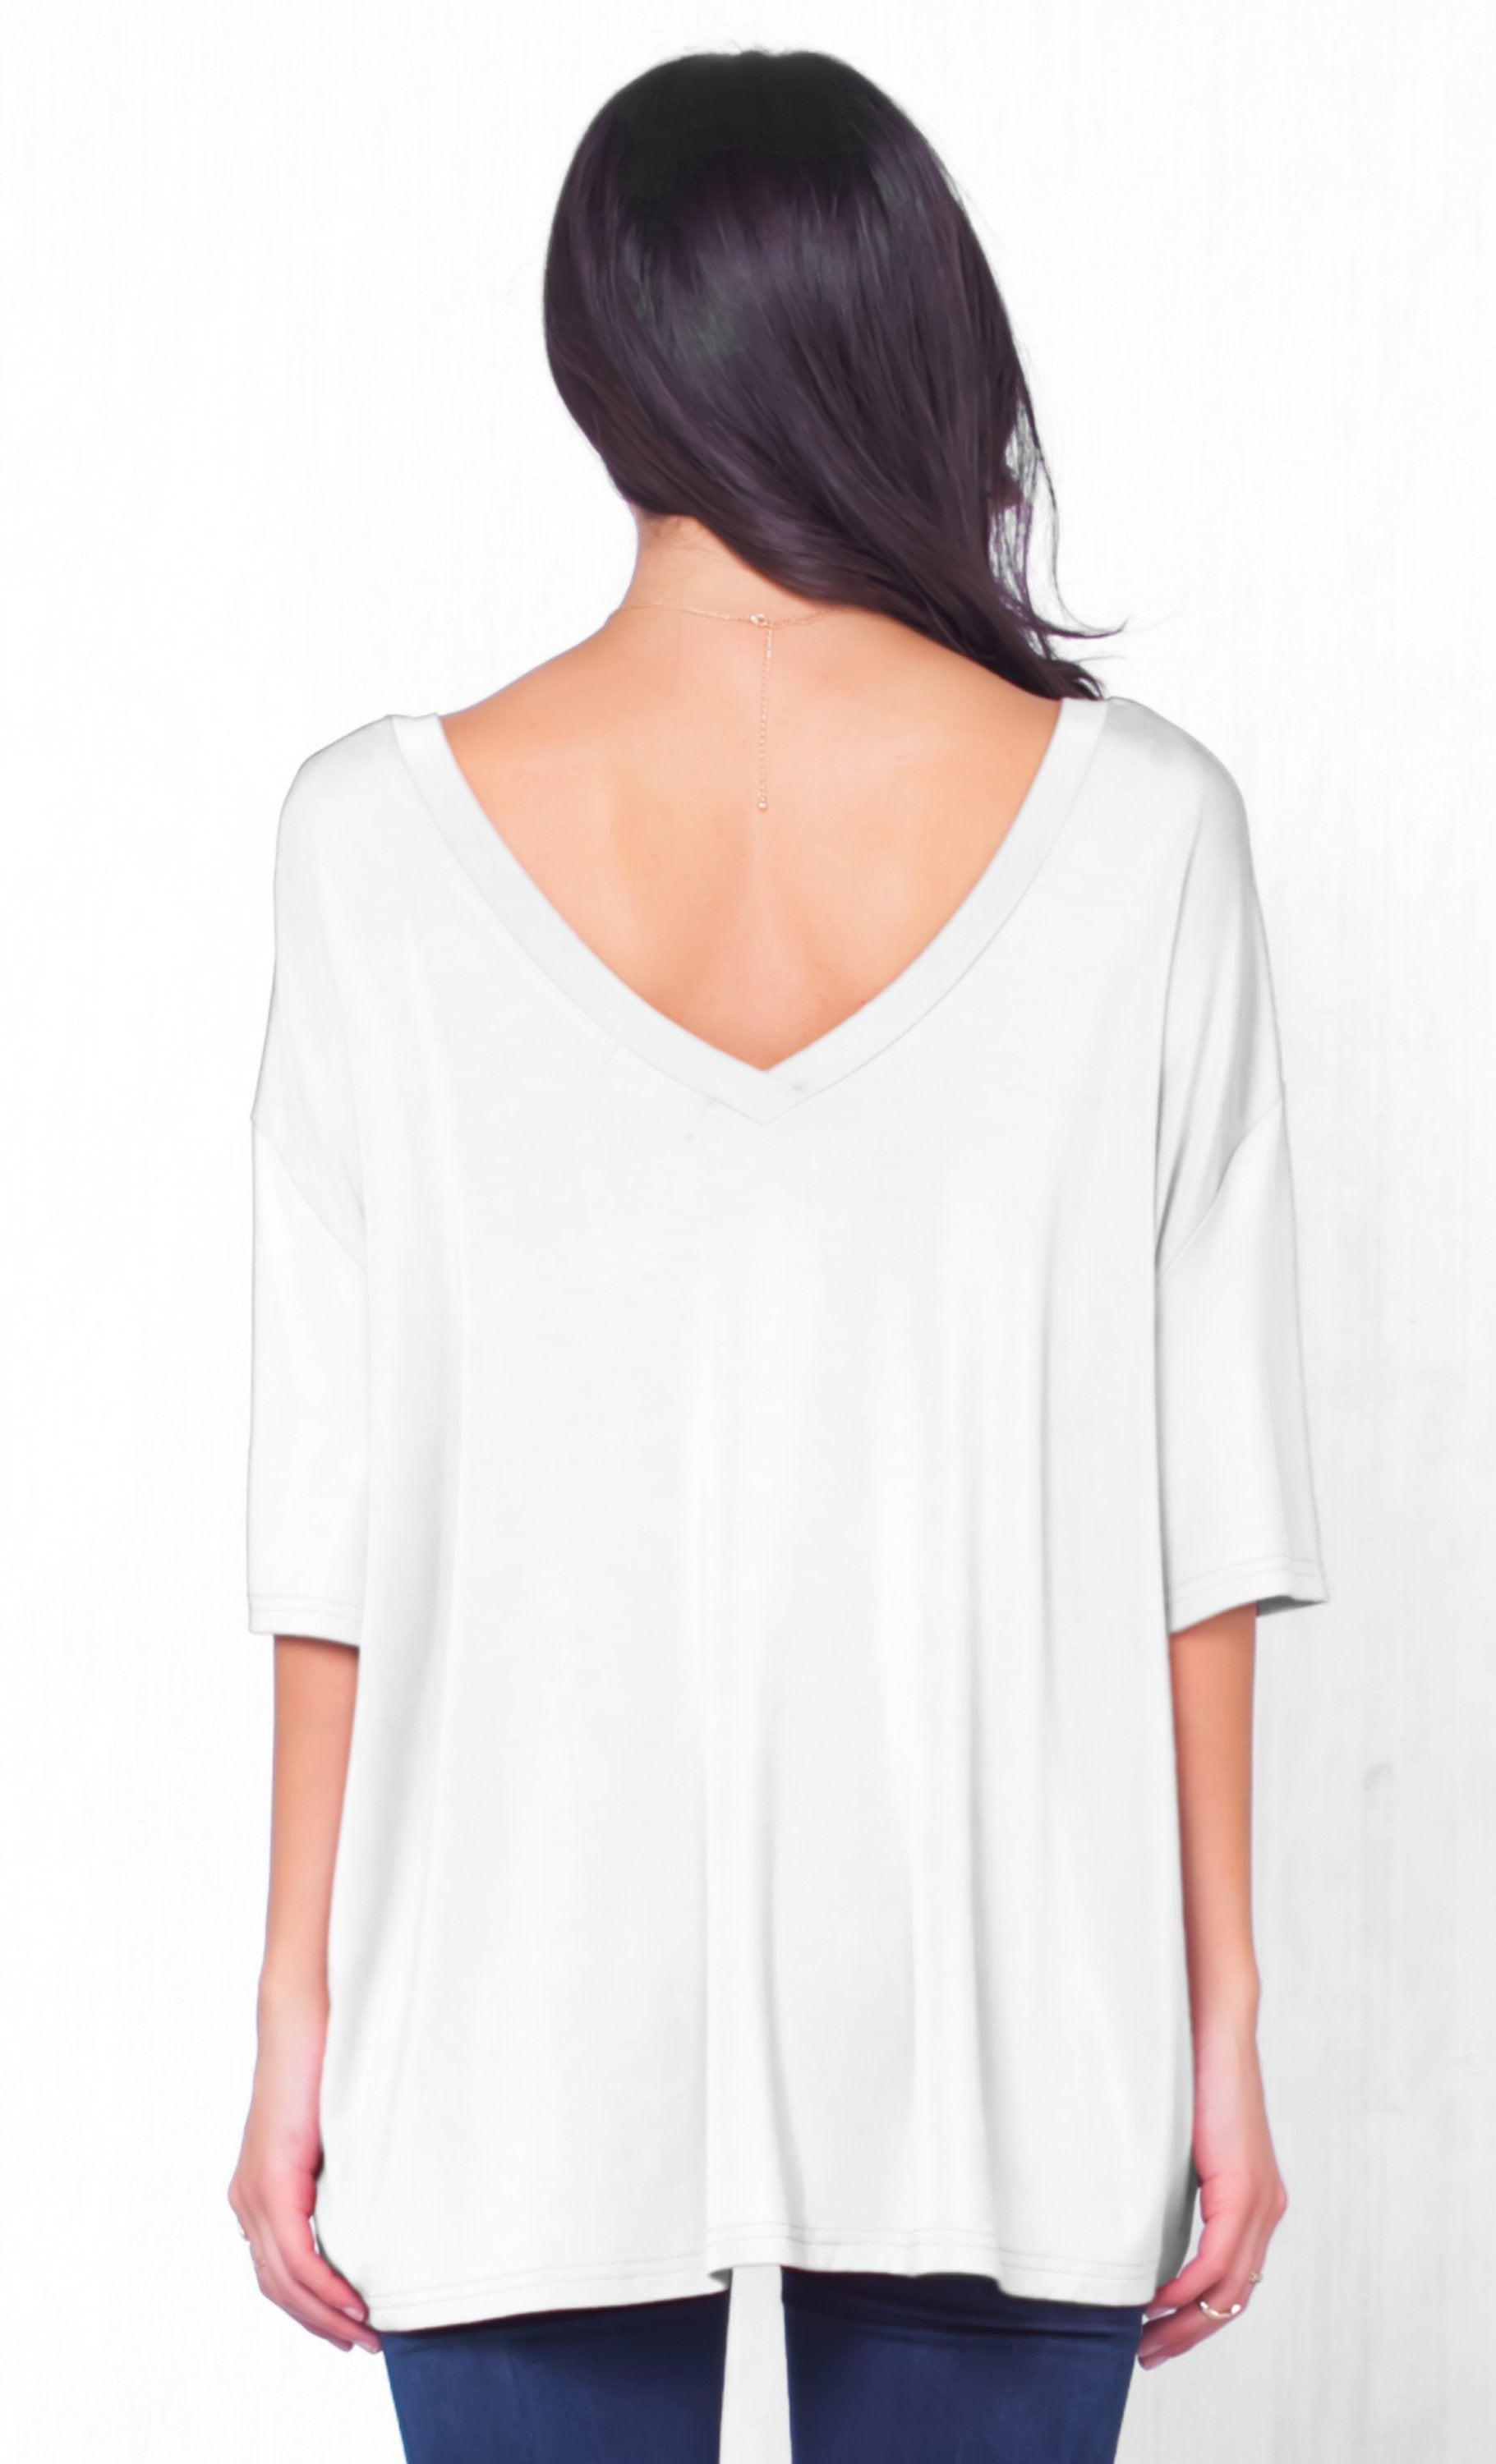 Piko 1988 Bamboo White Short Dolman Sleeve Double V Neck Bamboo Basic Loose Tunic Tee Top